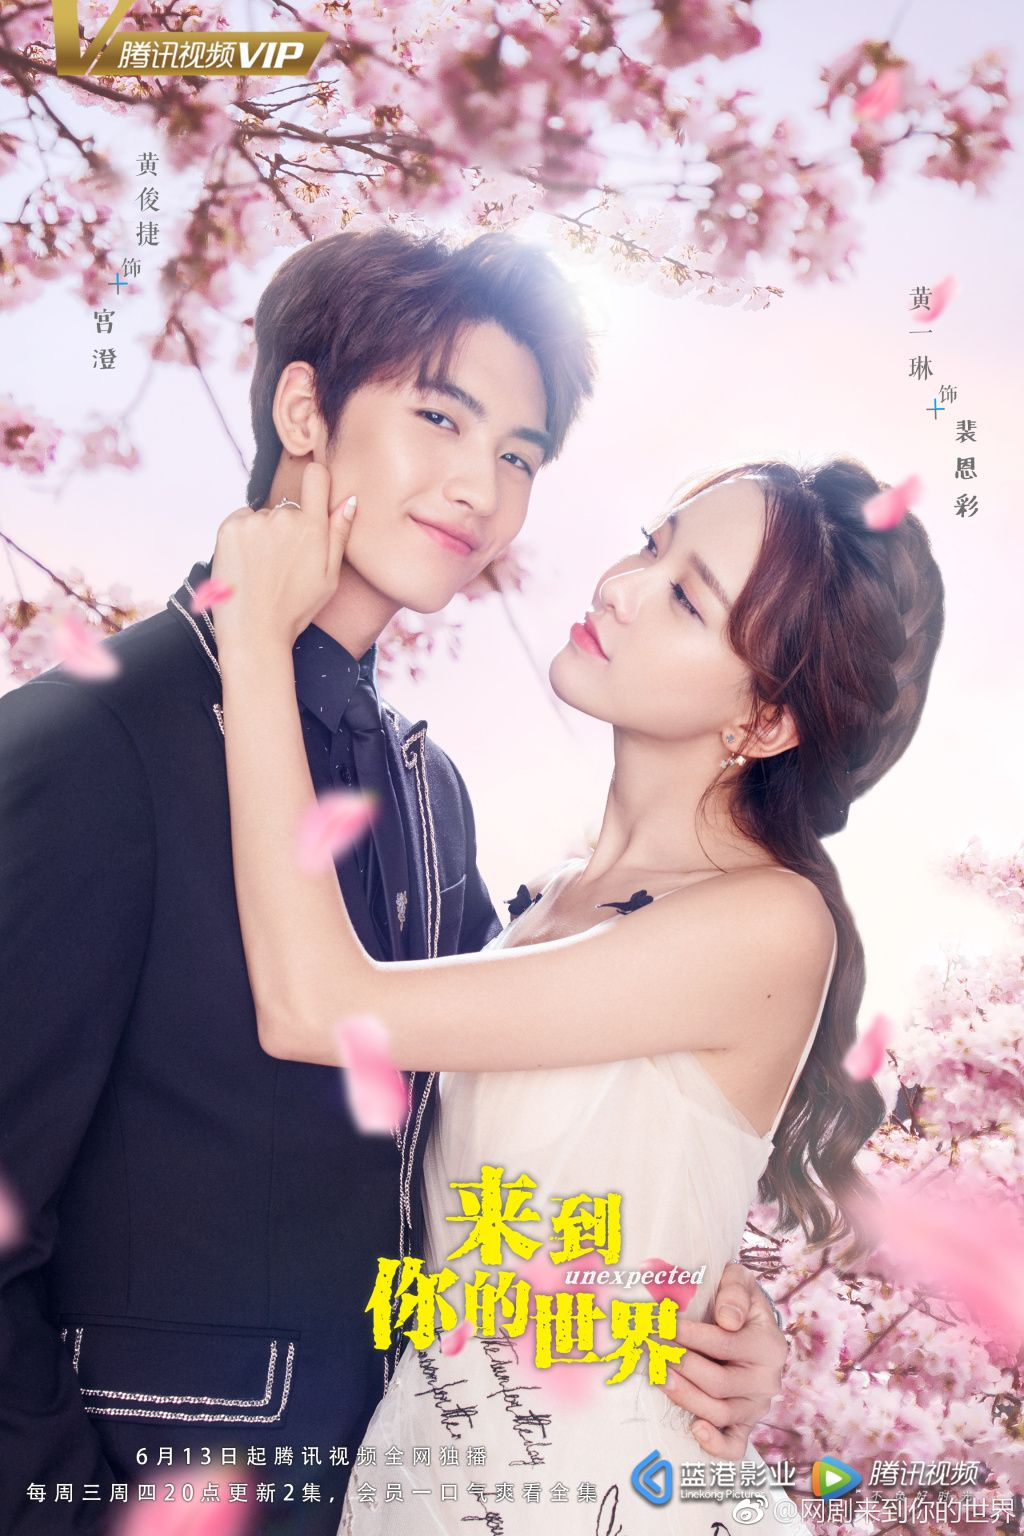 Unexpected (2018)   Genres: Romance, Fantasy #chinesedrama #chinese